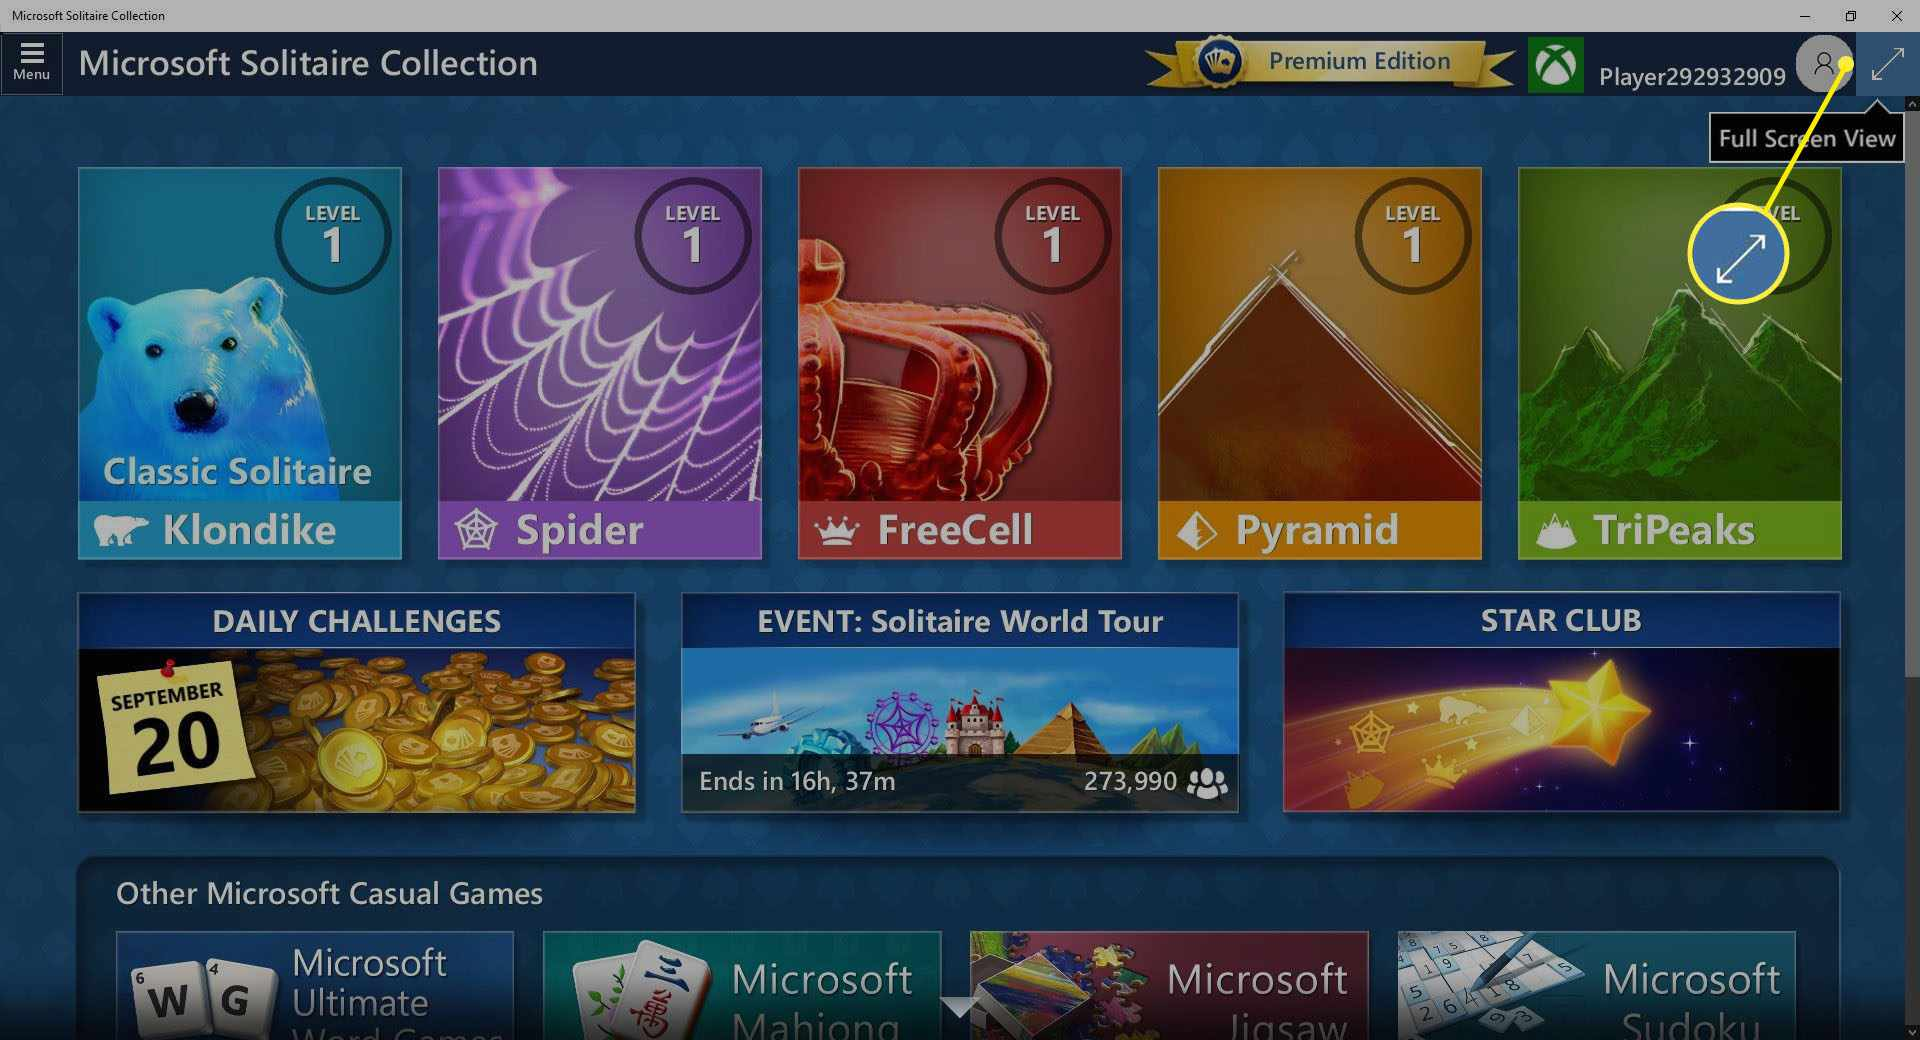 Screenshot of Full Screen View icon in MS Solitaire